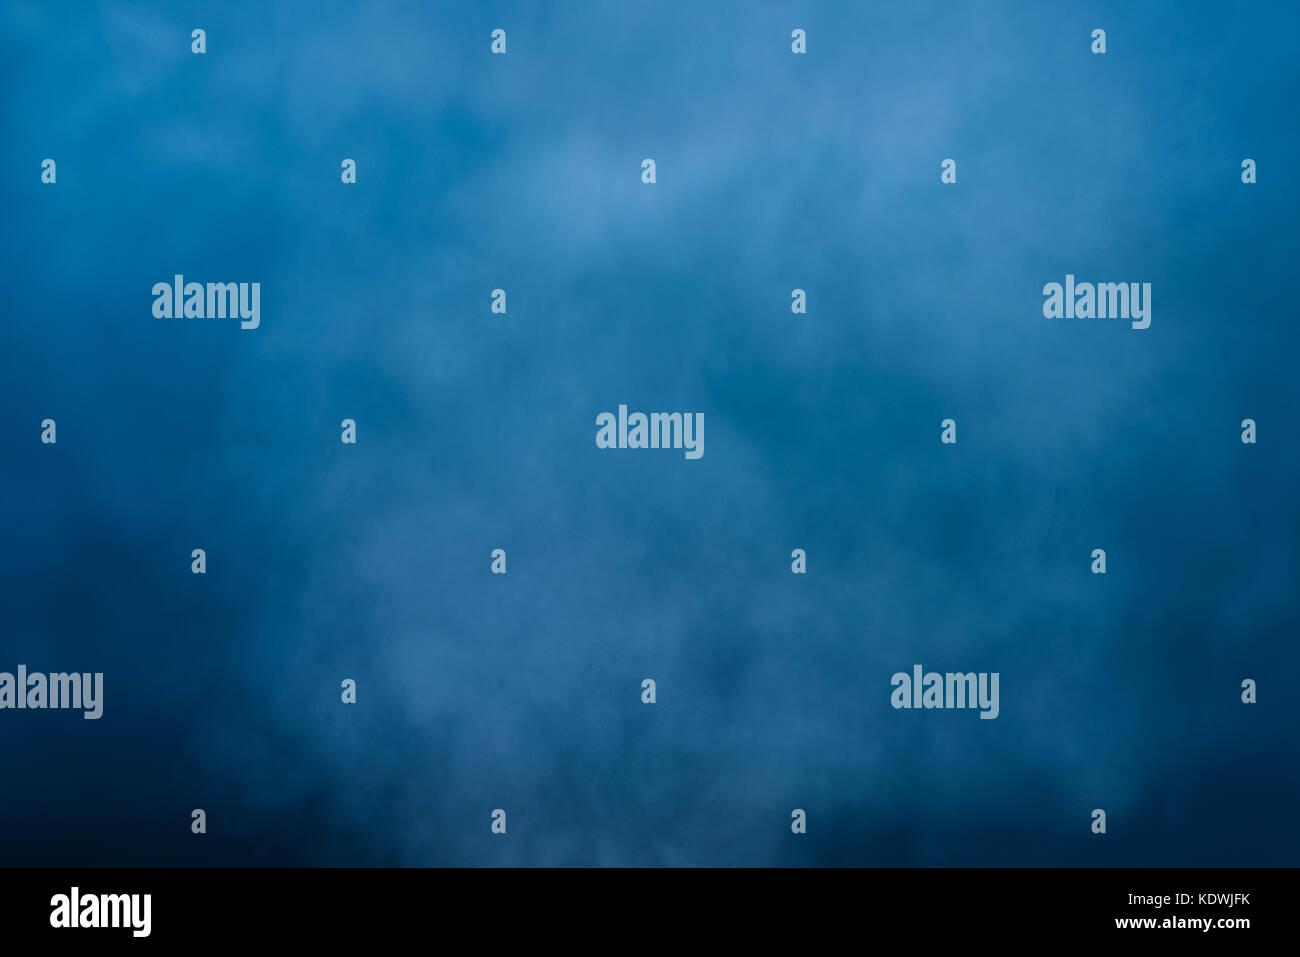 Abstract white water vapor on a blue background. Texture. Design elements. - Stock Image